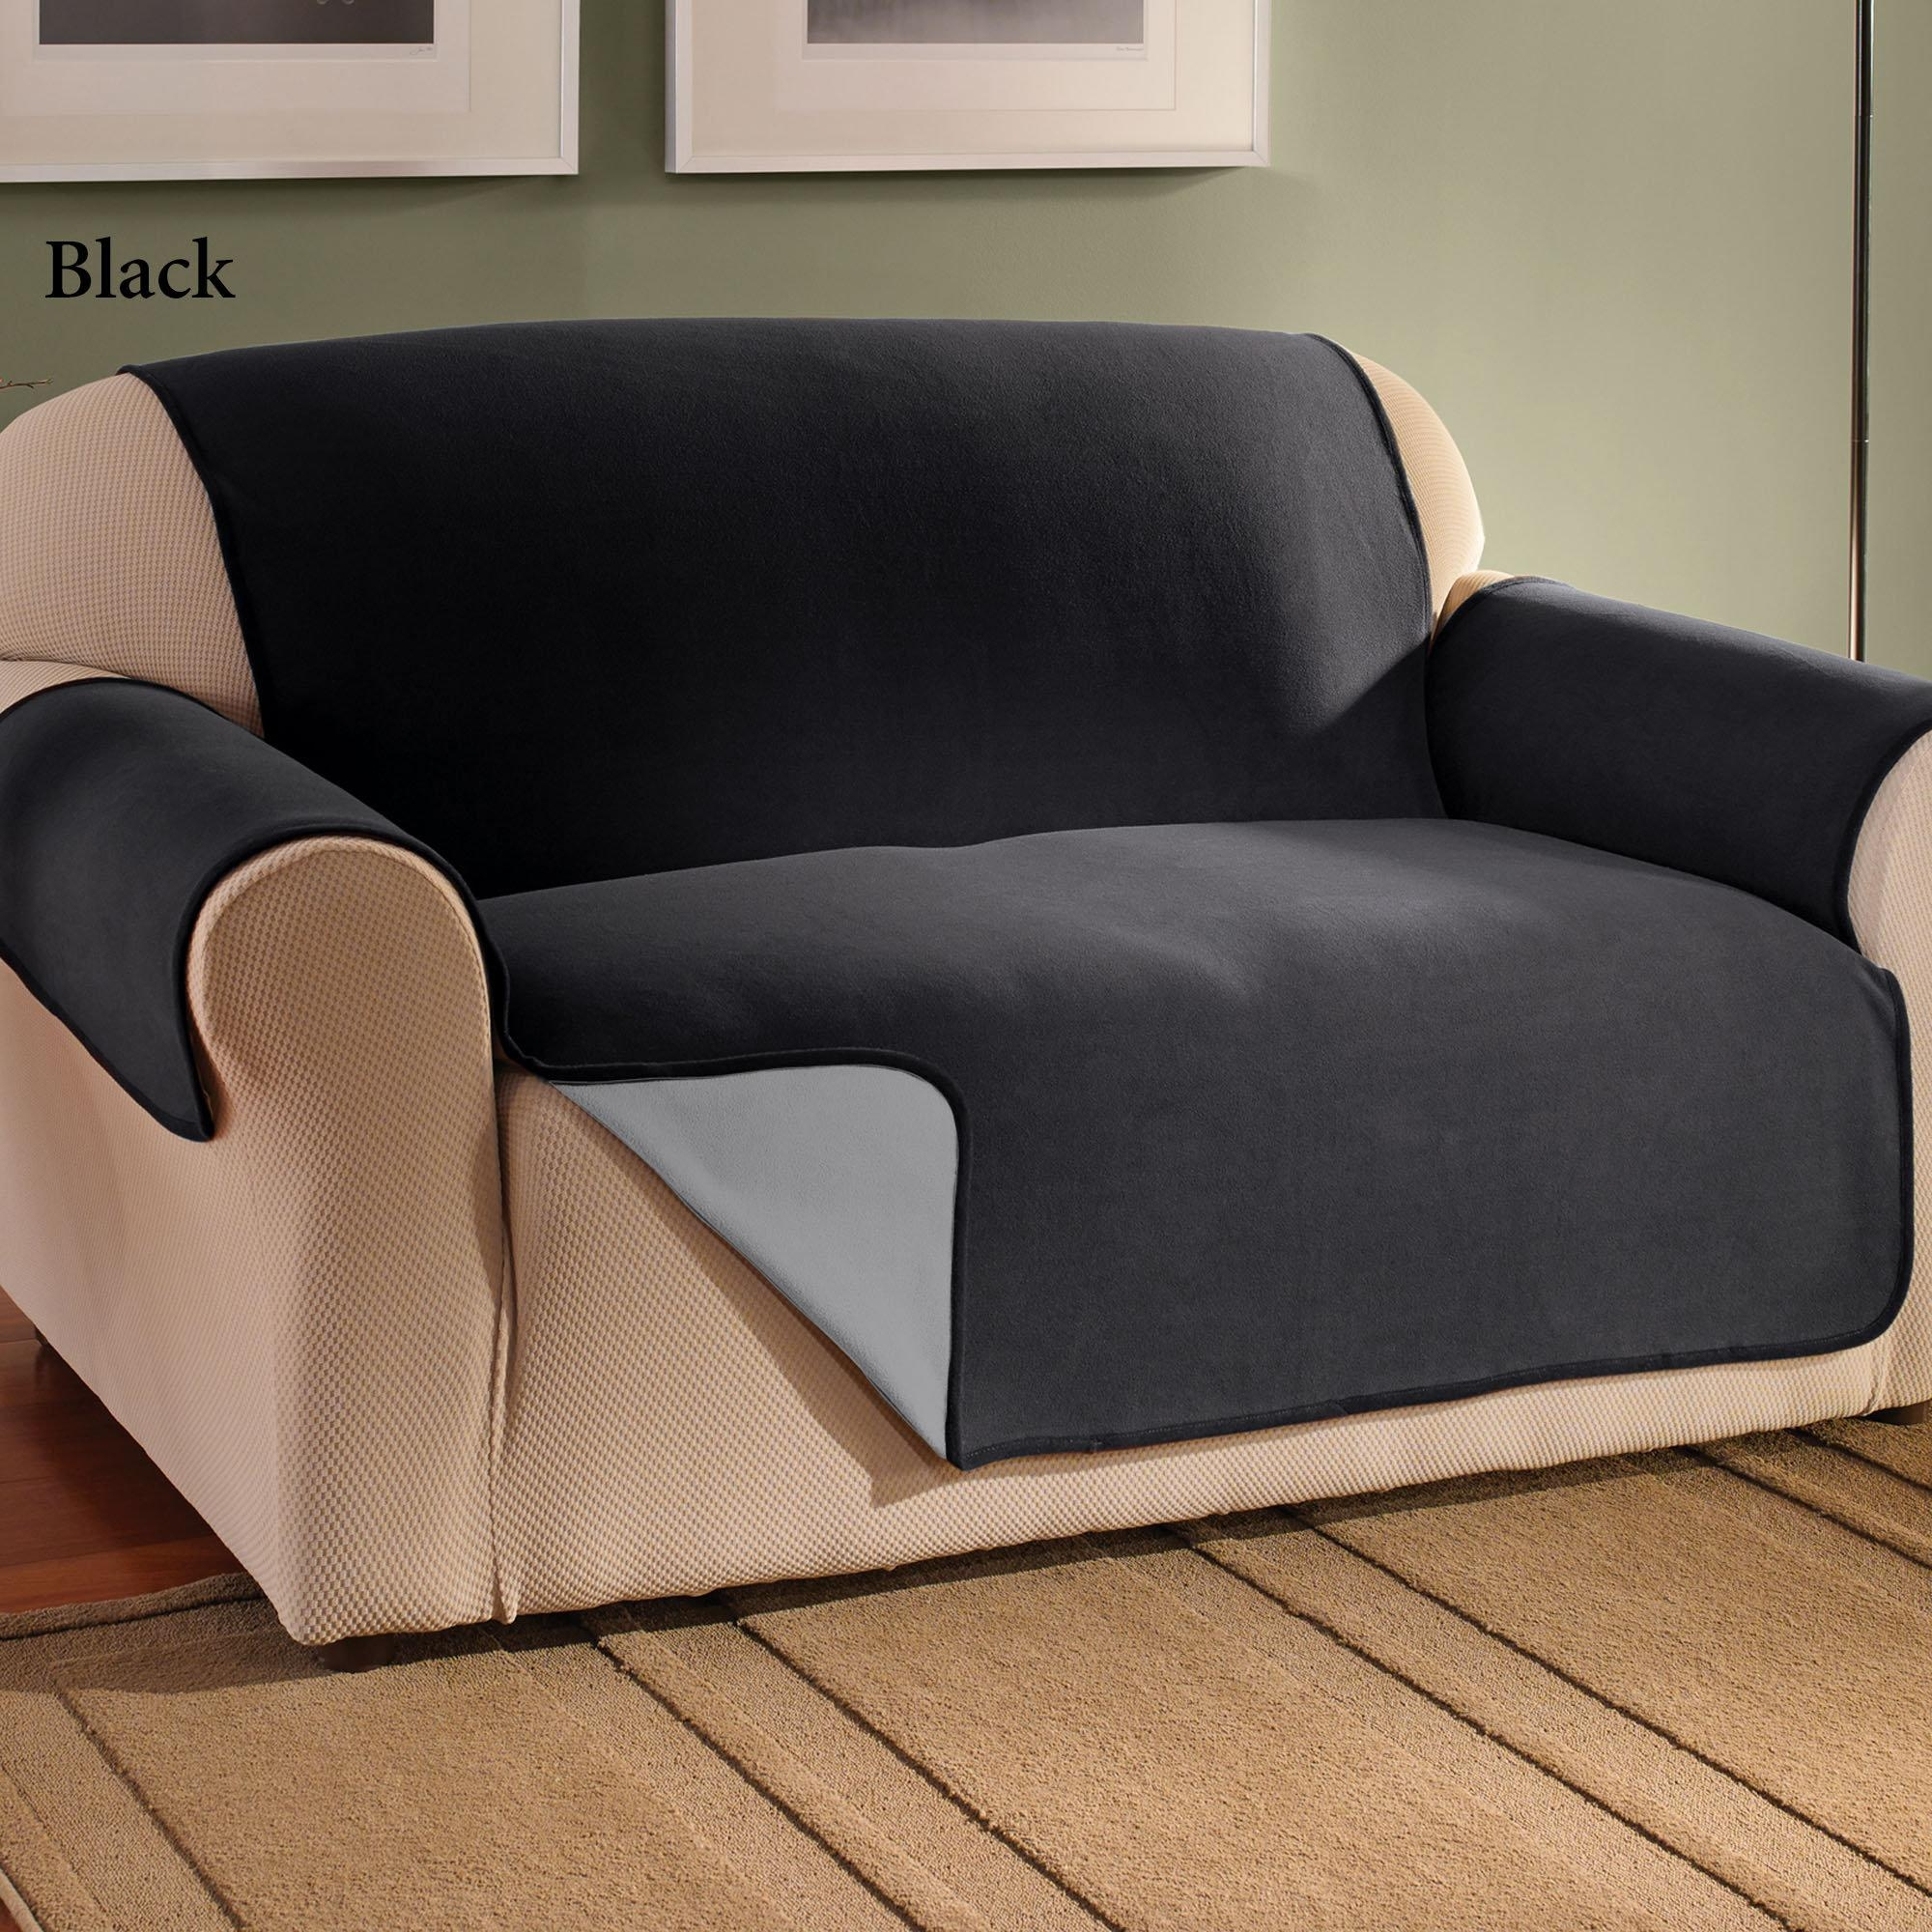 Sofas : Fabulous Sectional Couch Slipcovers Leather Armchair Intended For Sofa Settee Covers (View 3 of 22)